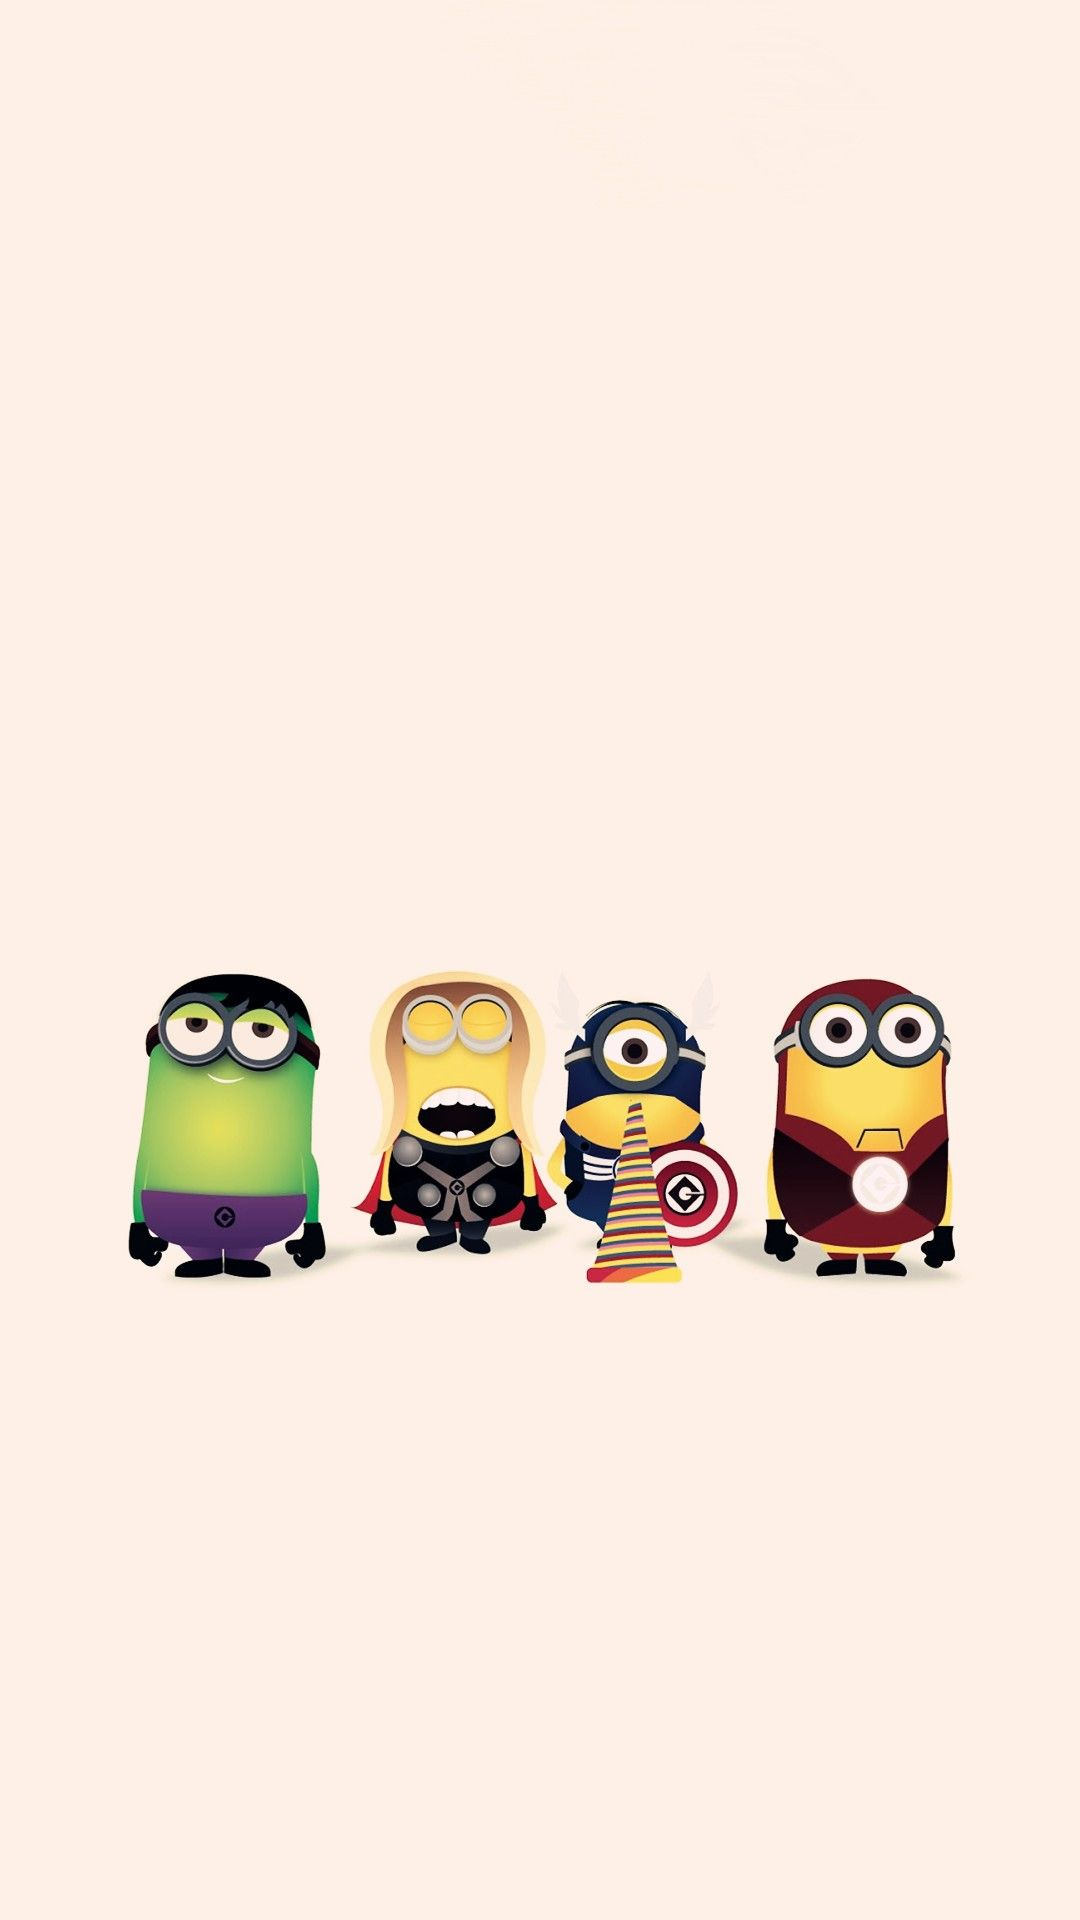 hd cartoon avengers minion apple iphone 6 plus wallpaper